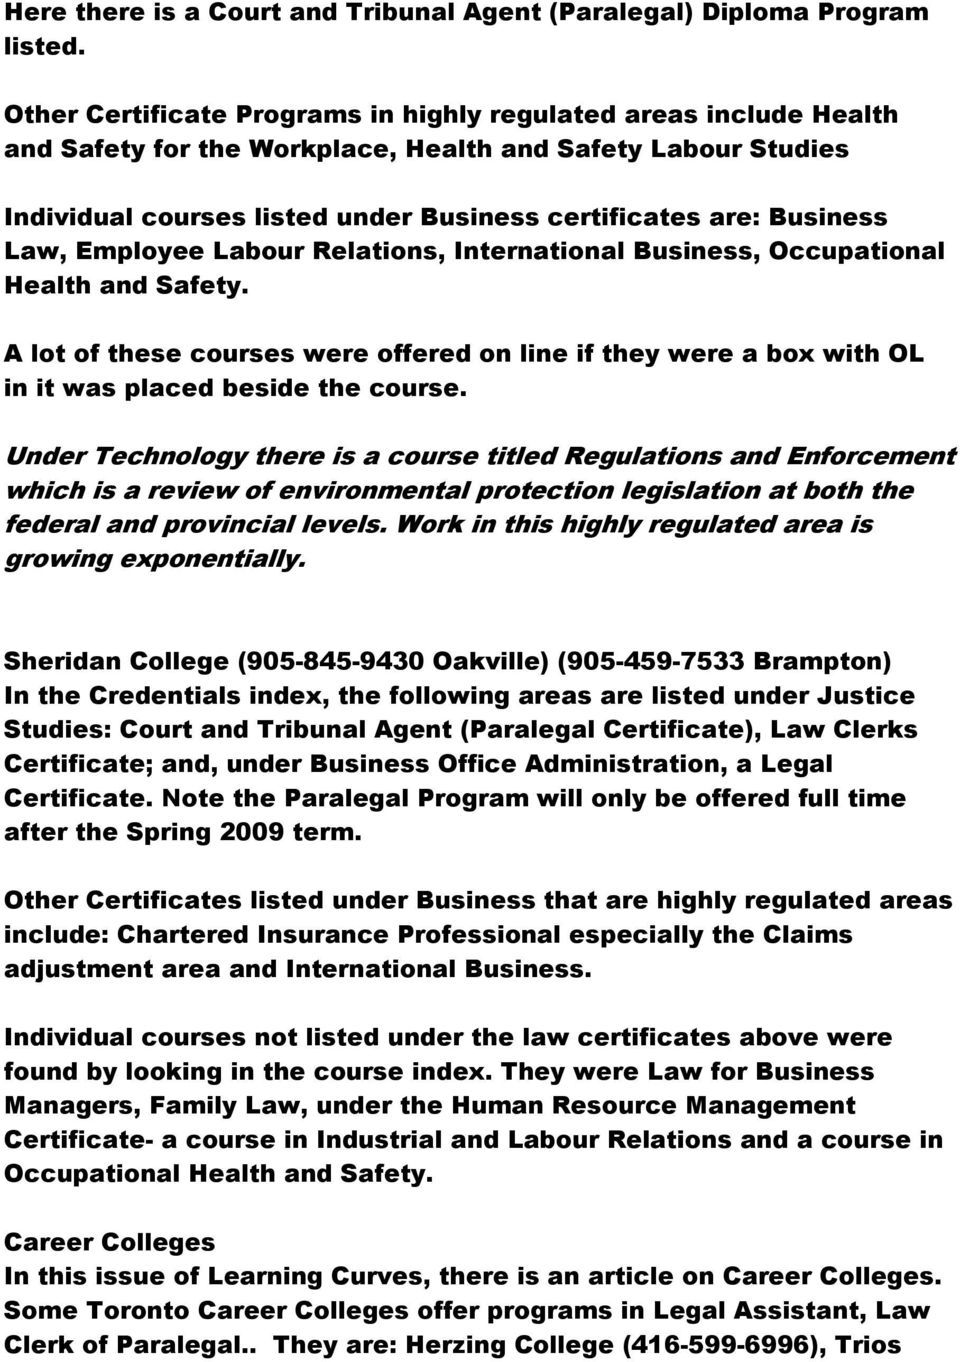 Law, Employee Labour Relations, International Business, Occupational Health and Safety. A lot of these courses were offered on line if they were a box with OL in it was placed beside the course.